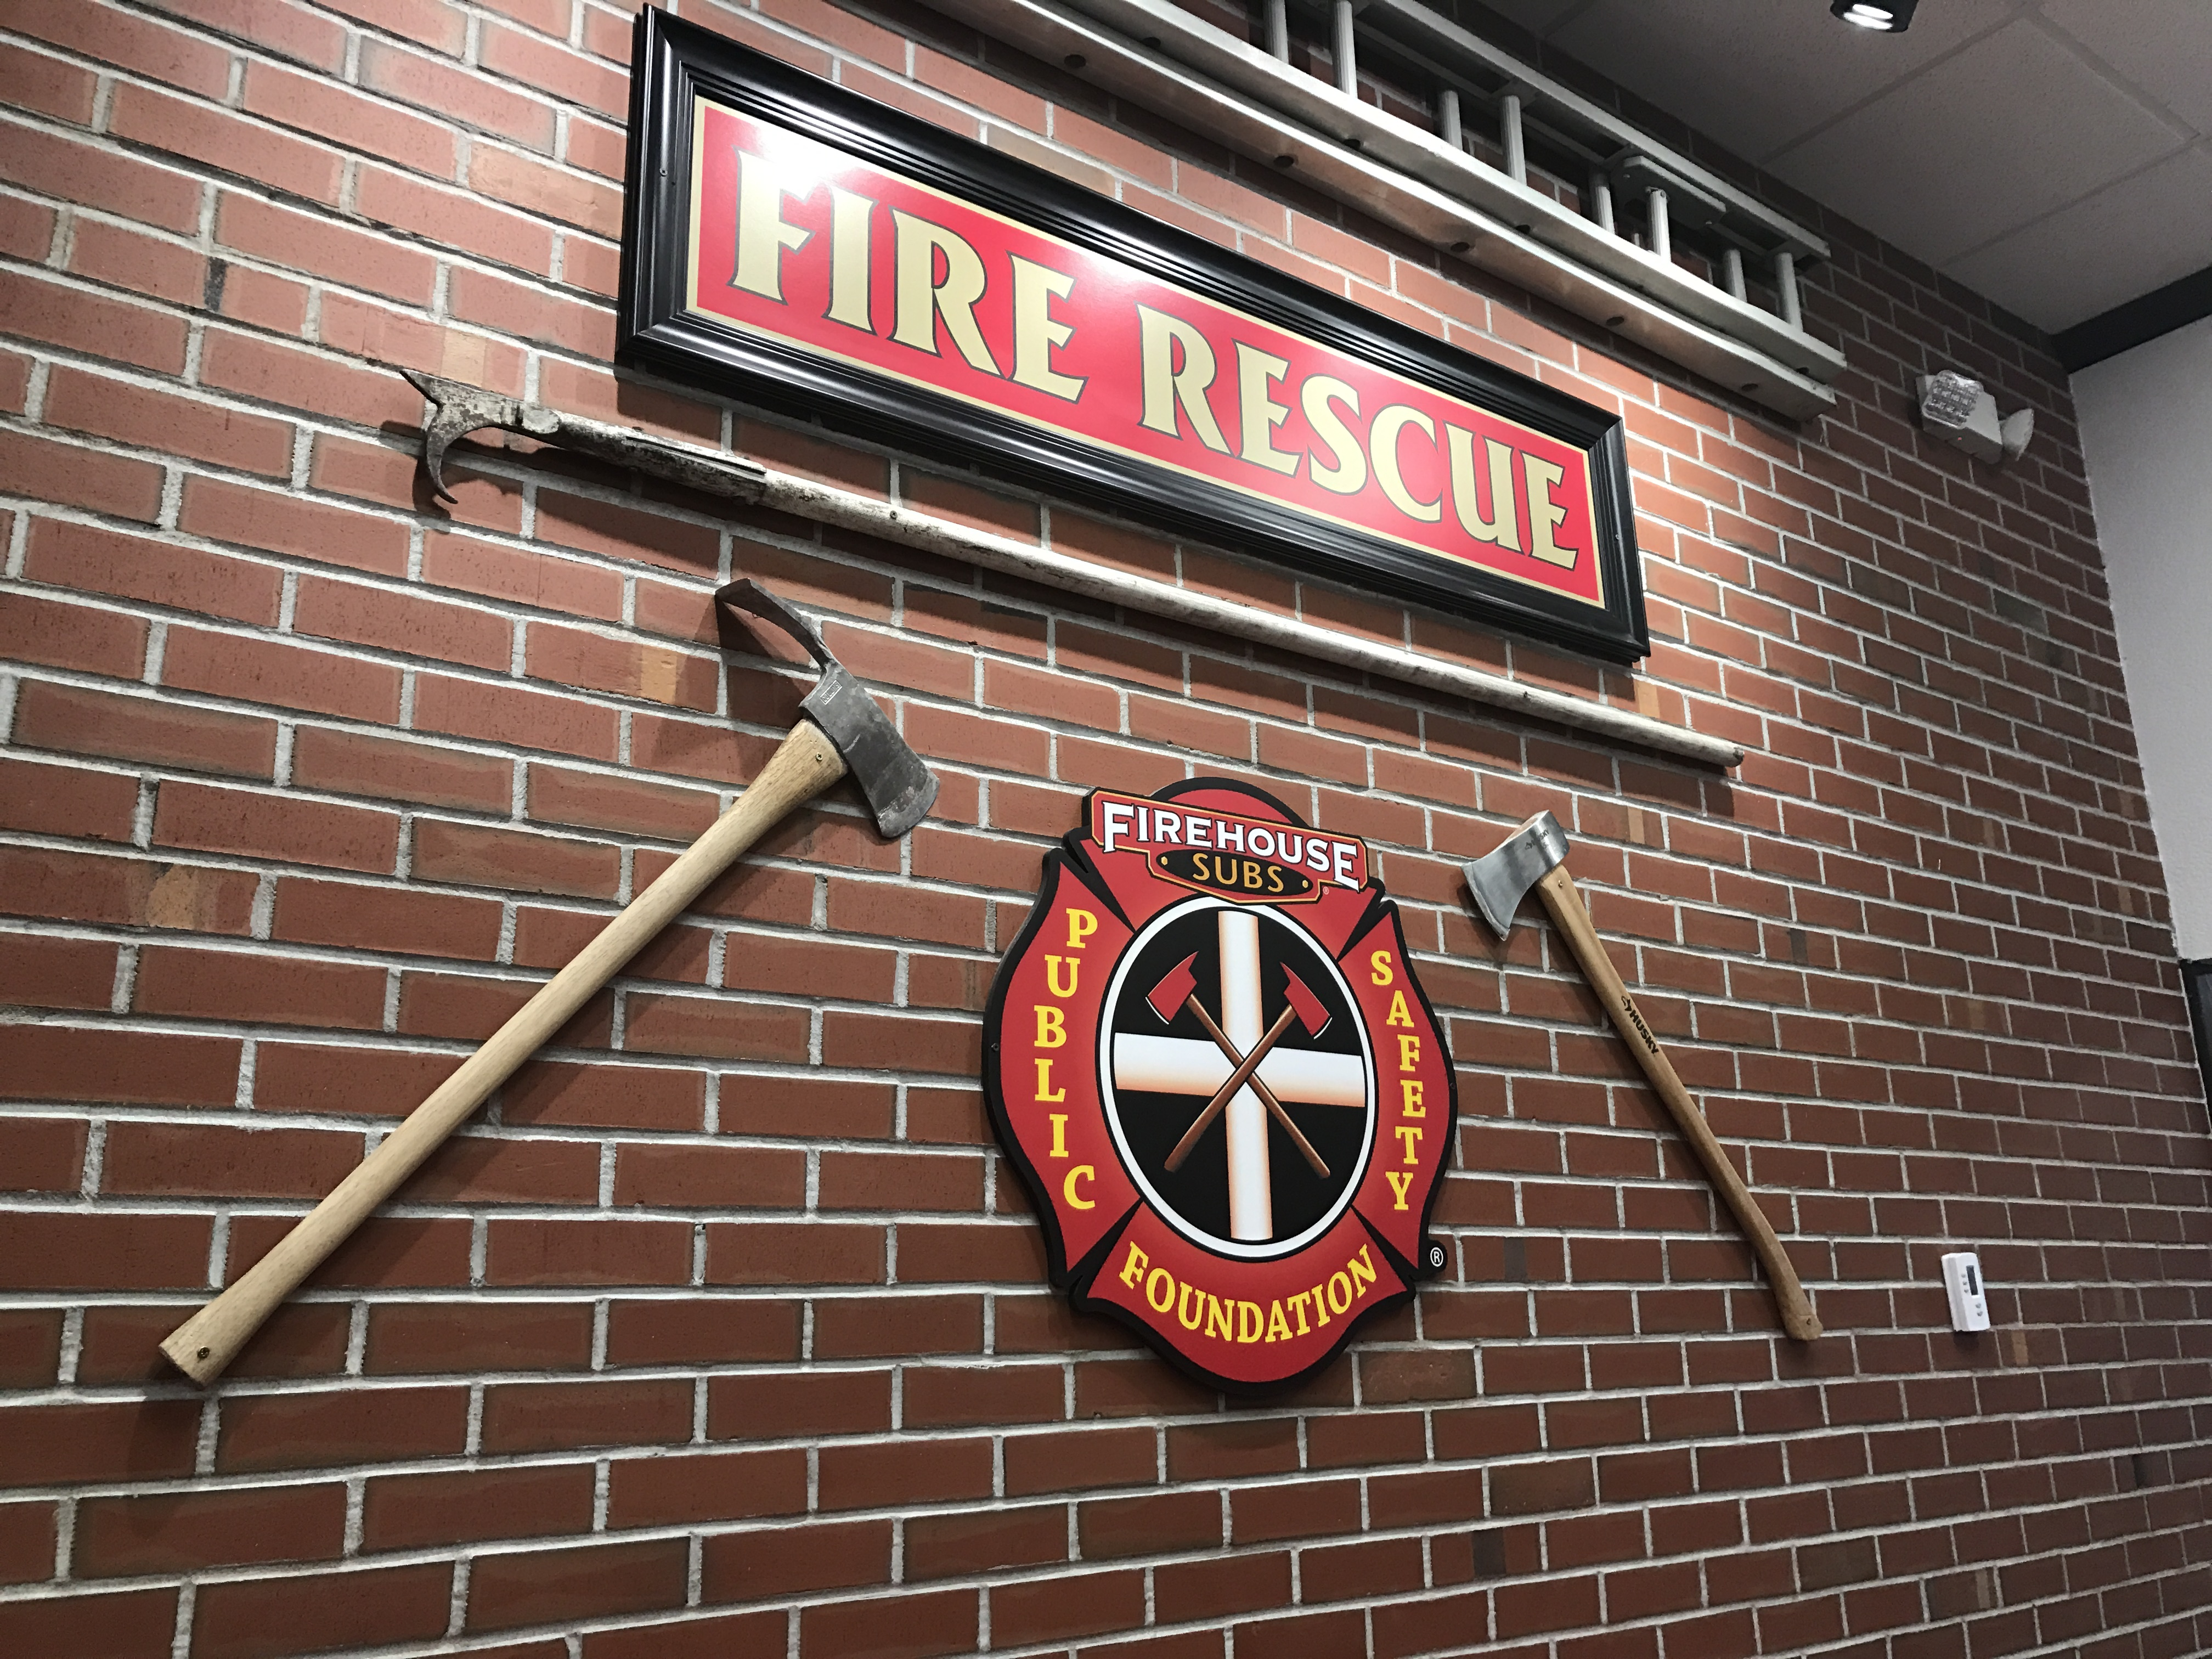 Firehouse Subs donated nearly $10,000 to the Cedar City Fire Department Thursday in the form of a dryer that will allow the firefighters to dry their suits faster now, Cedar City, Utah, Dec. 22, 2016 | Photo by Tracie Sullivan, St. George / Cedar City News